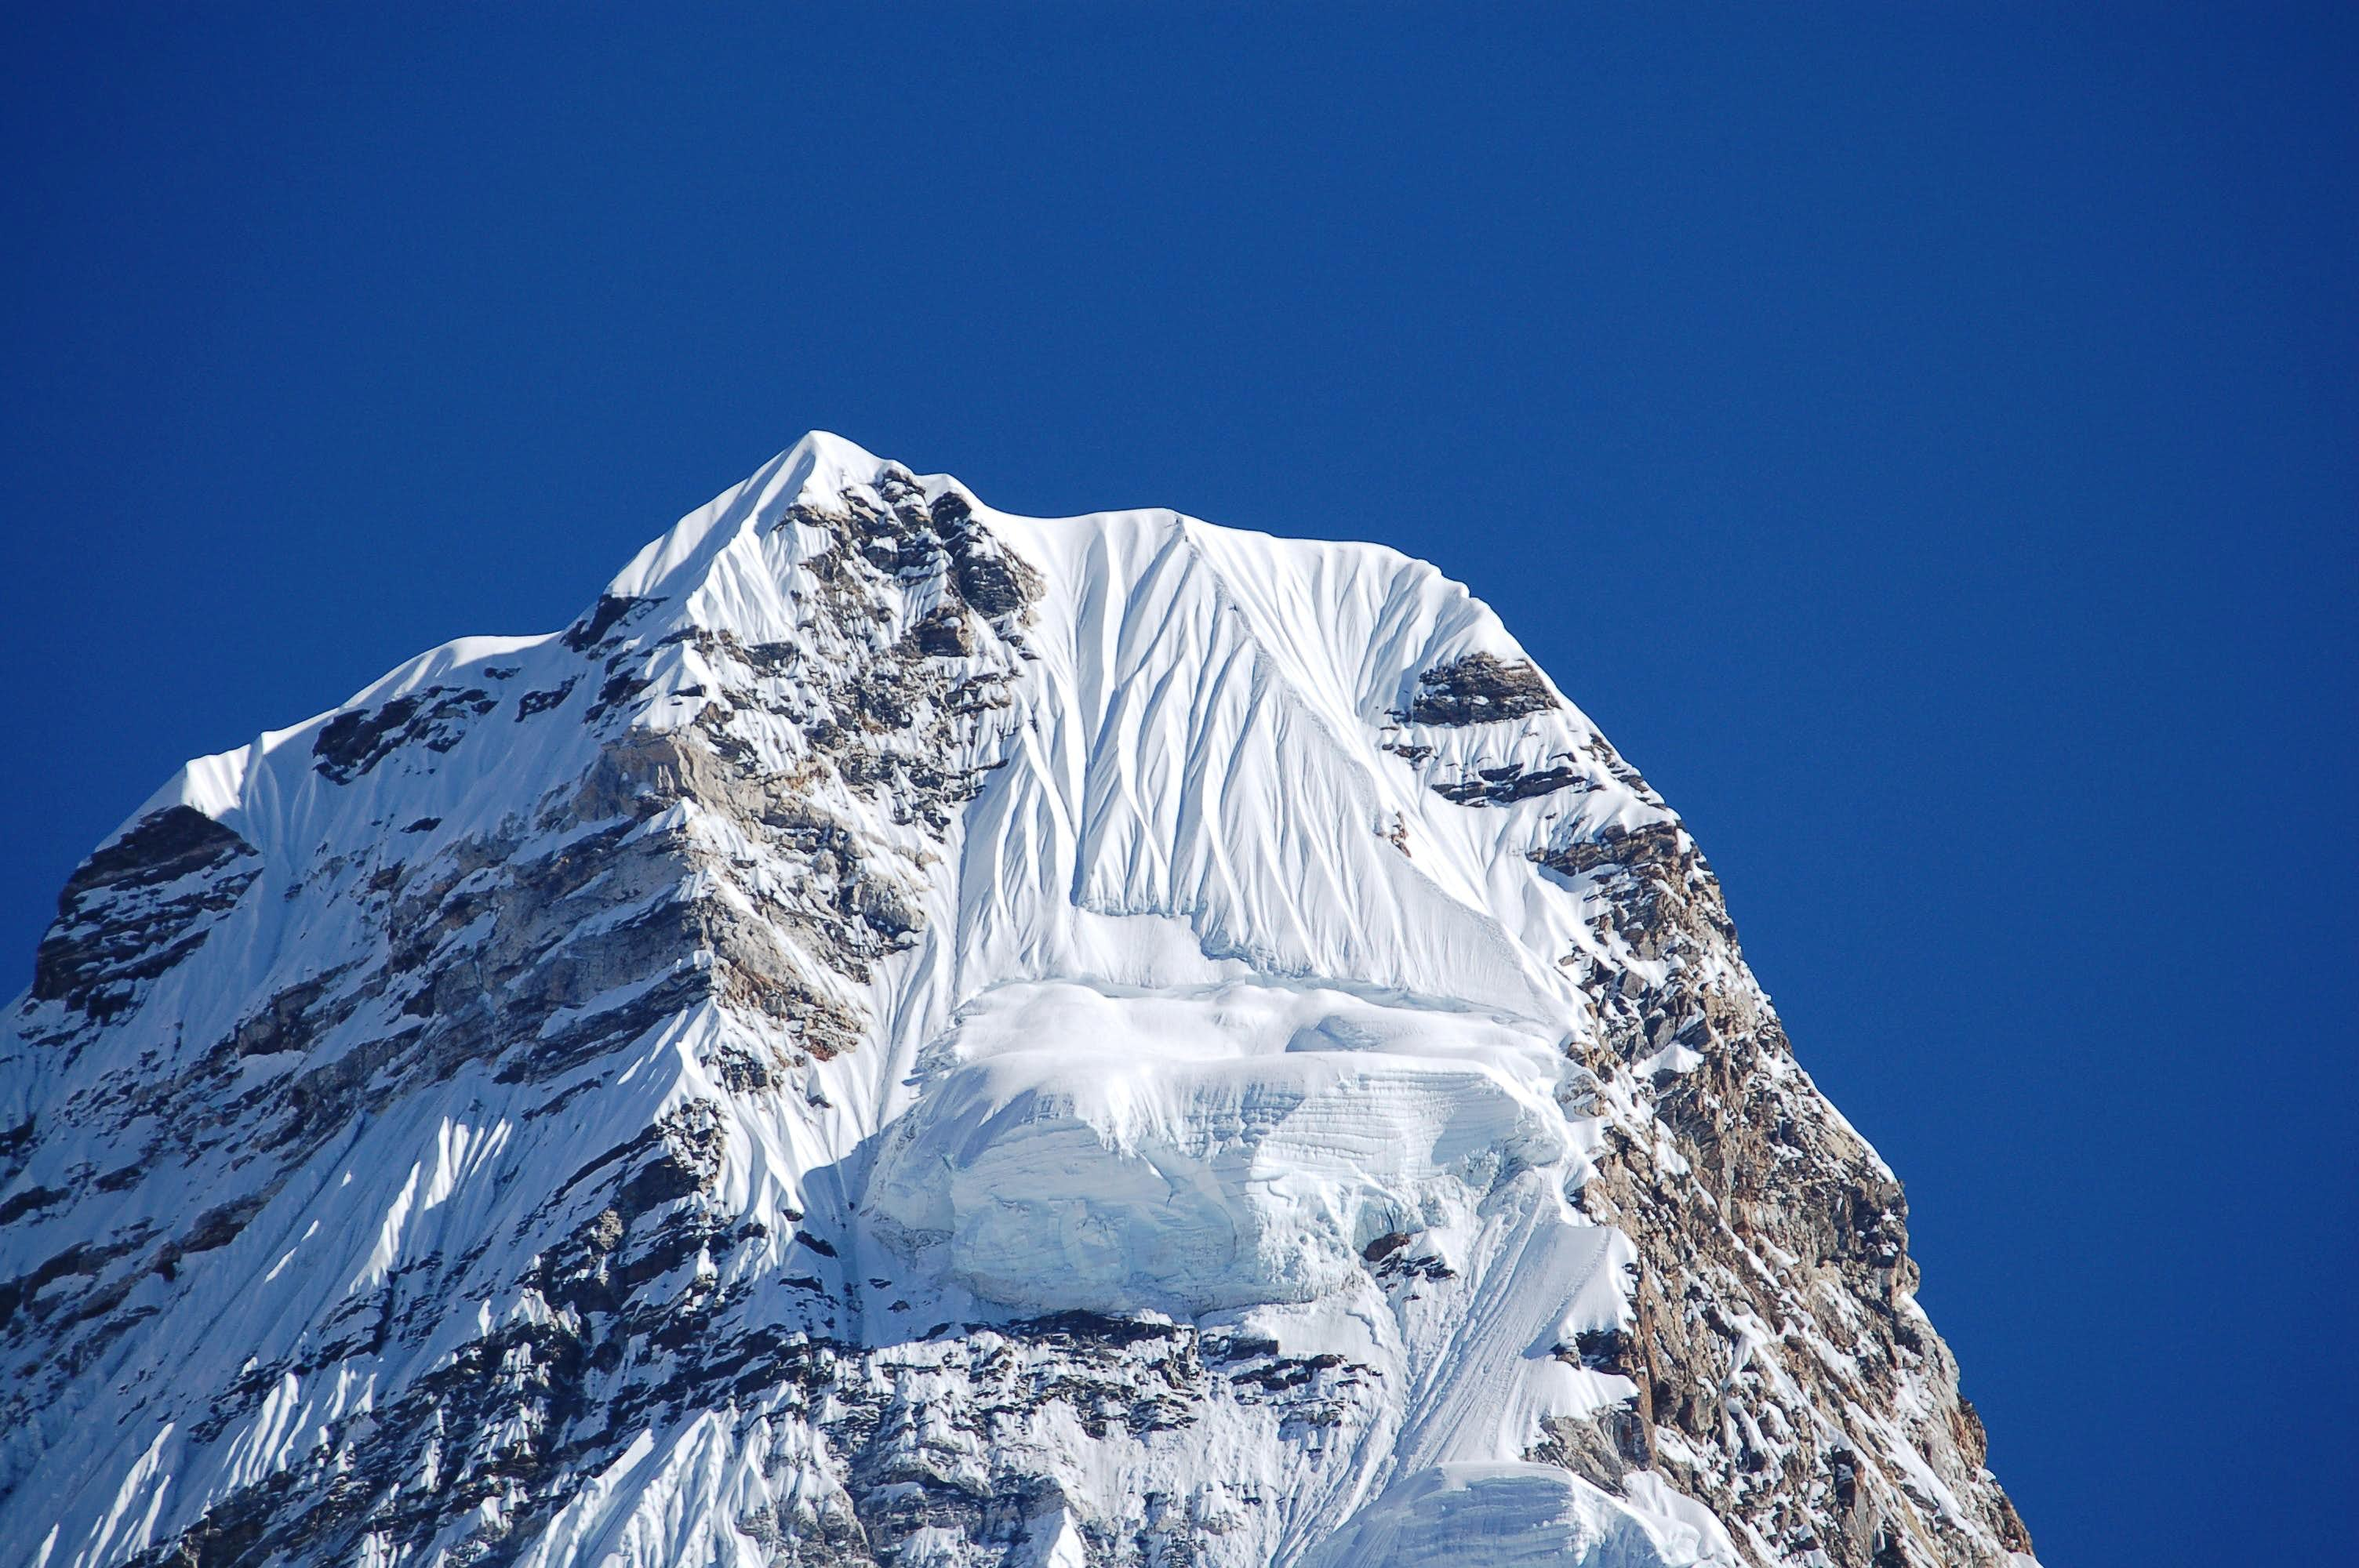 Ama Dablam - South West Ridge